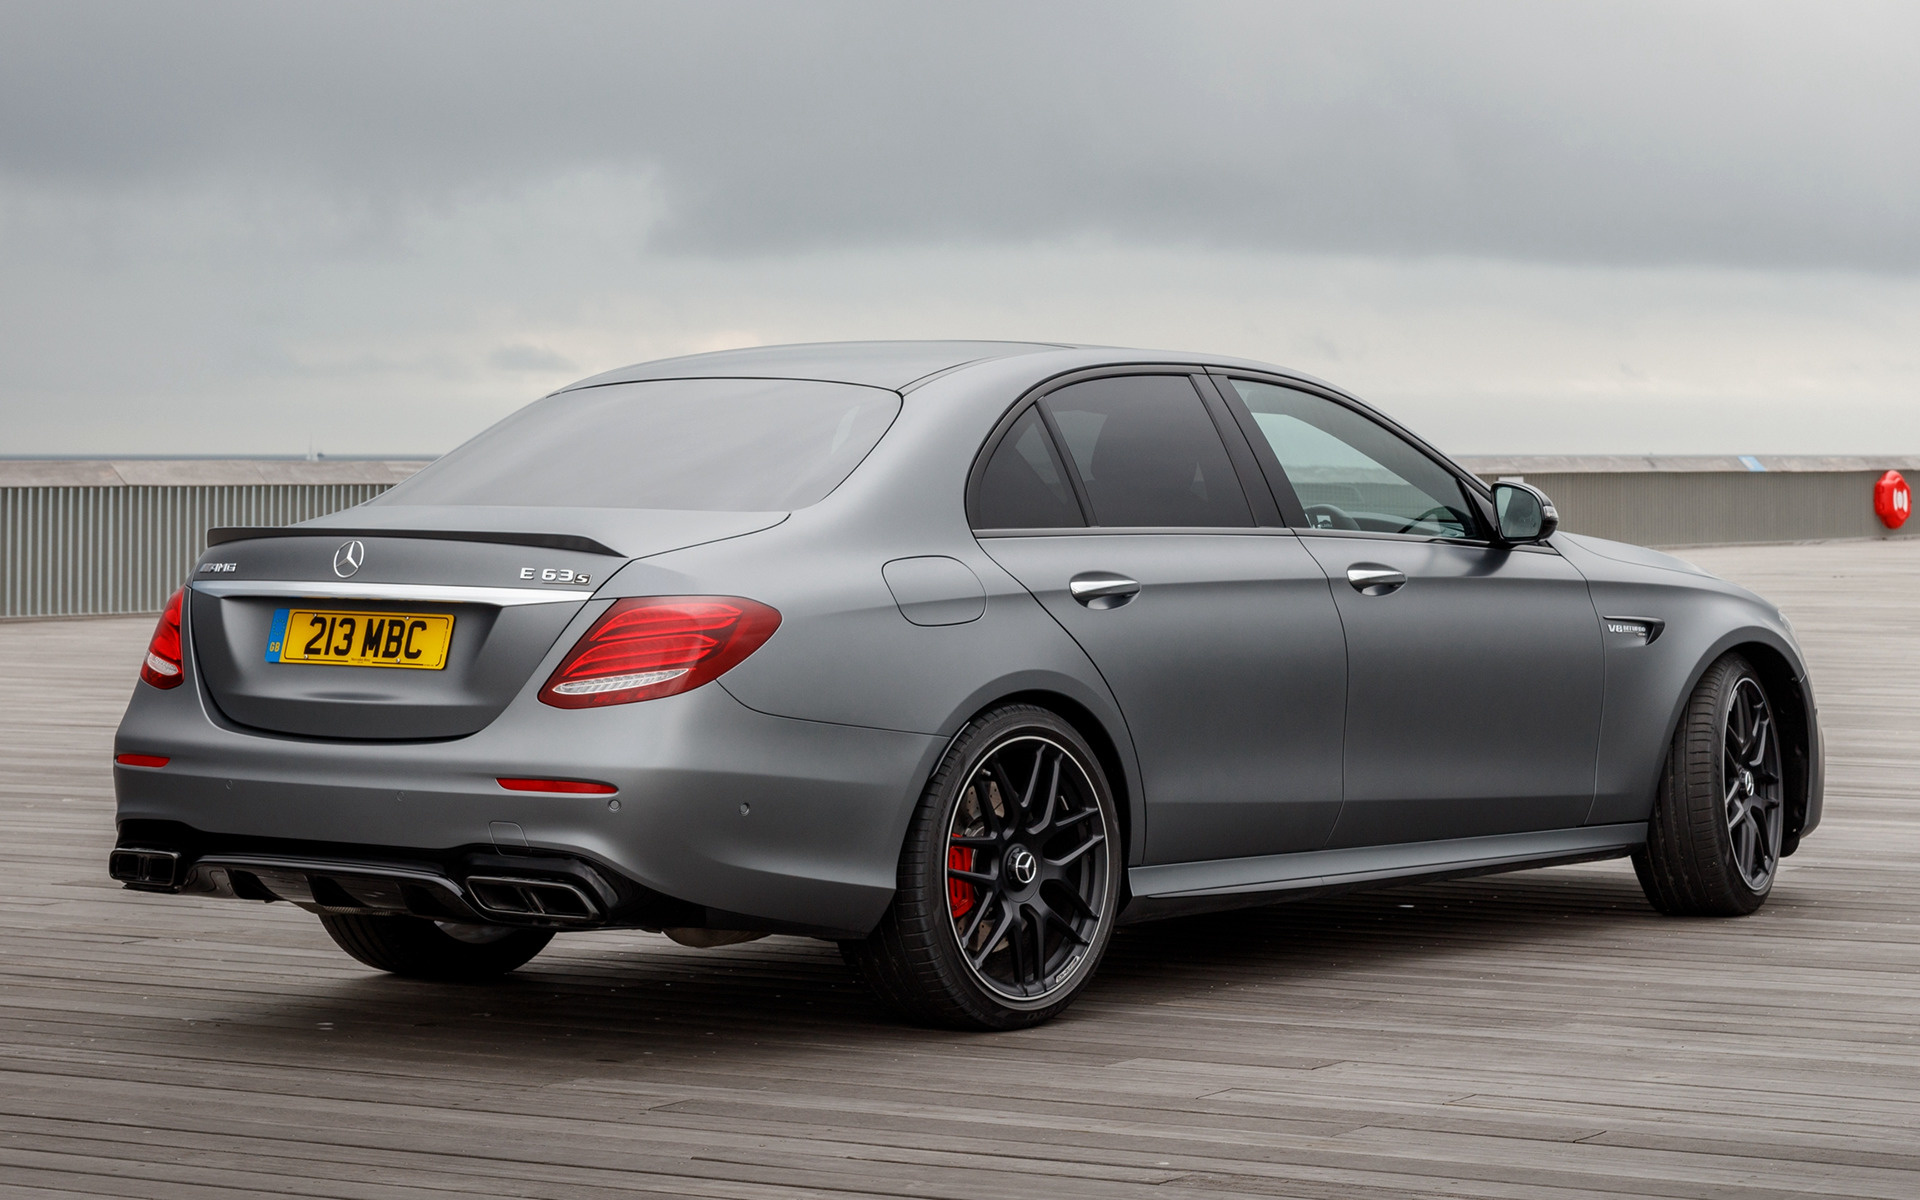 2017 Dodge Ram >> 2017 Mercedes-AMG E 63 S (UK) - Wallpapers and HD Images ...